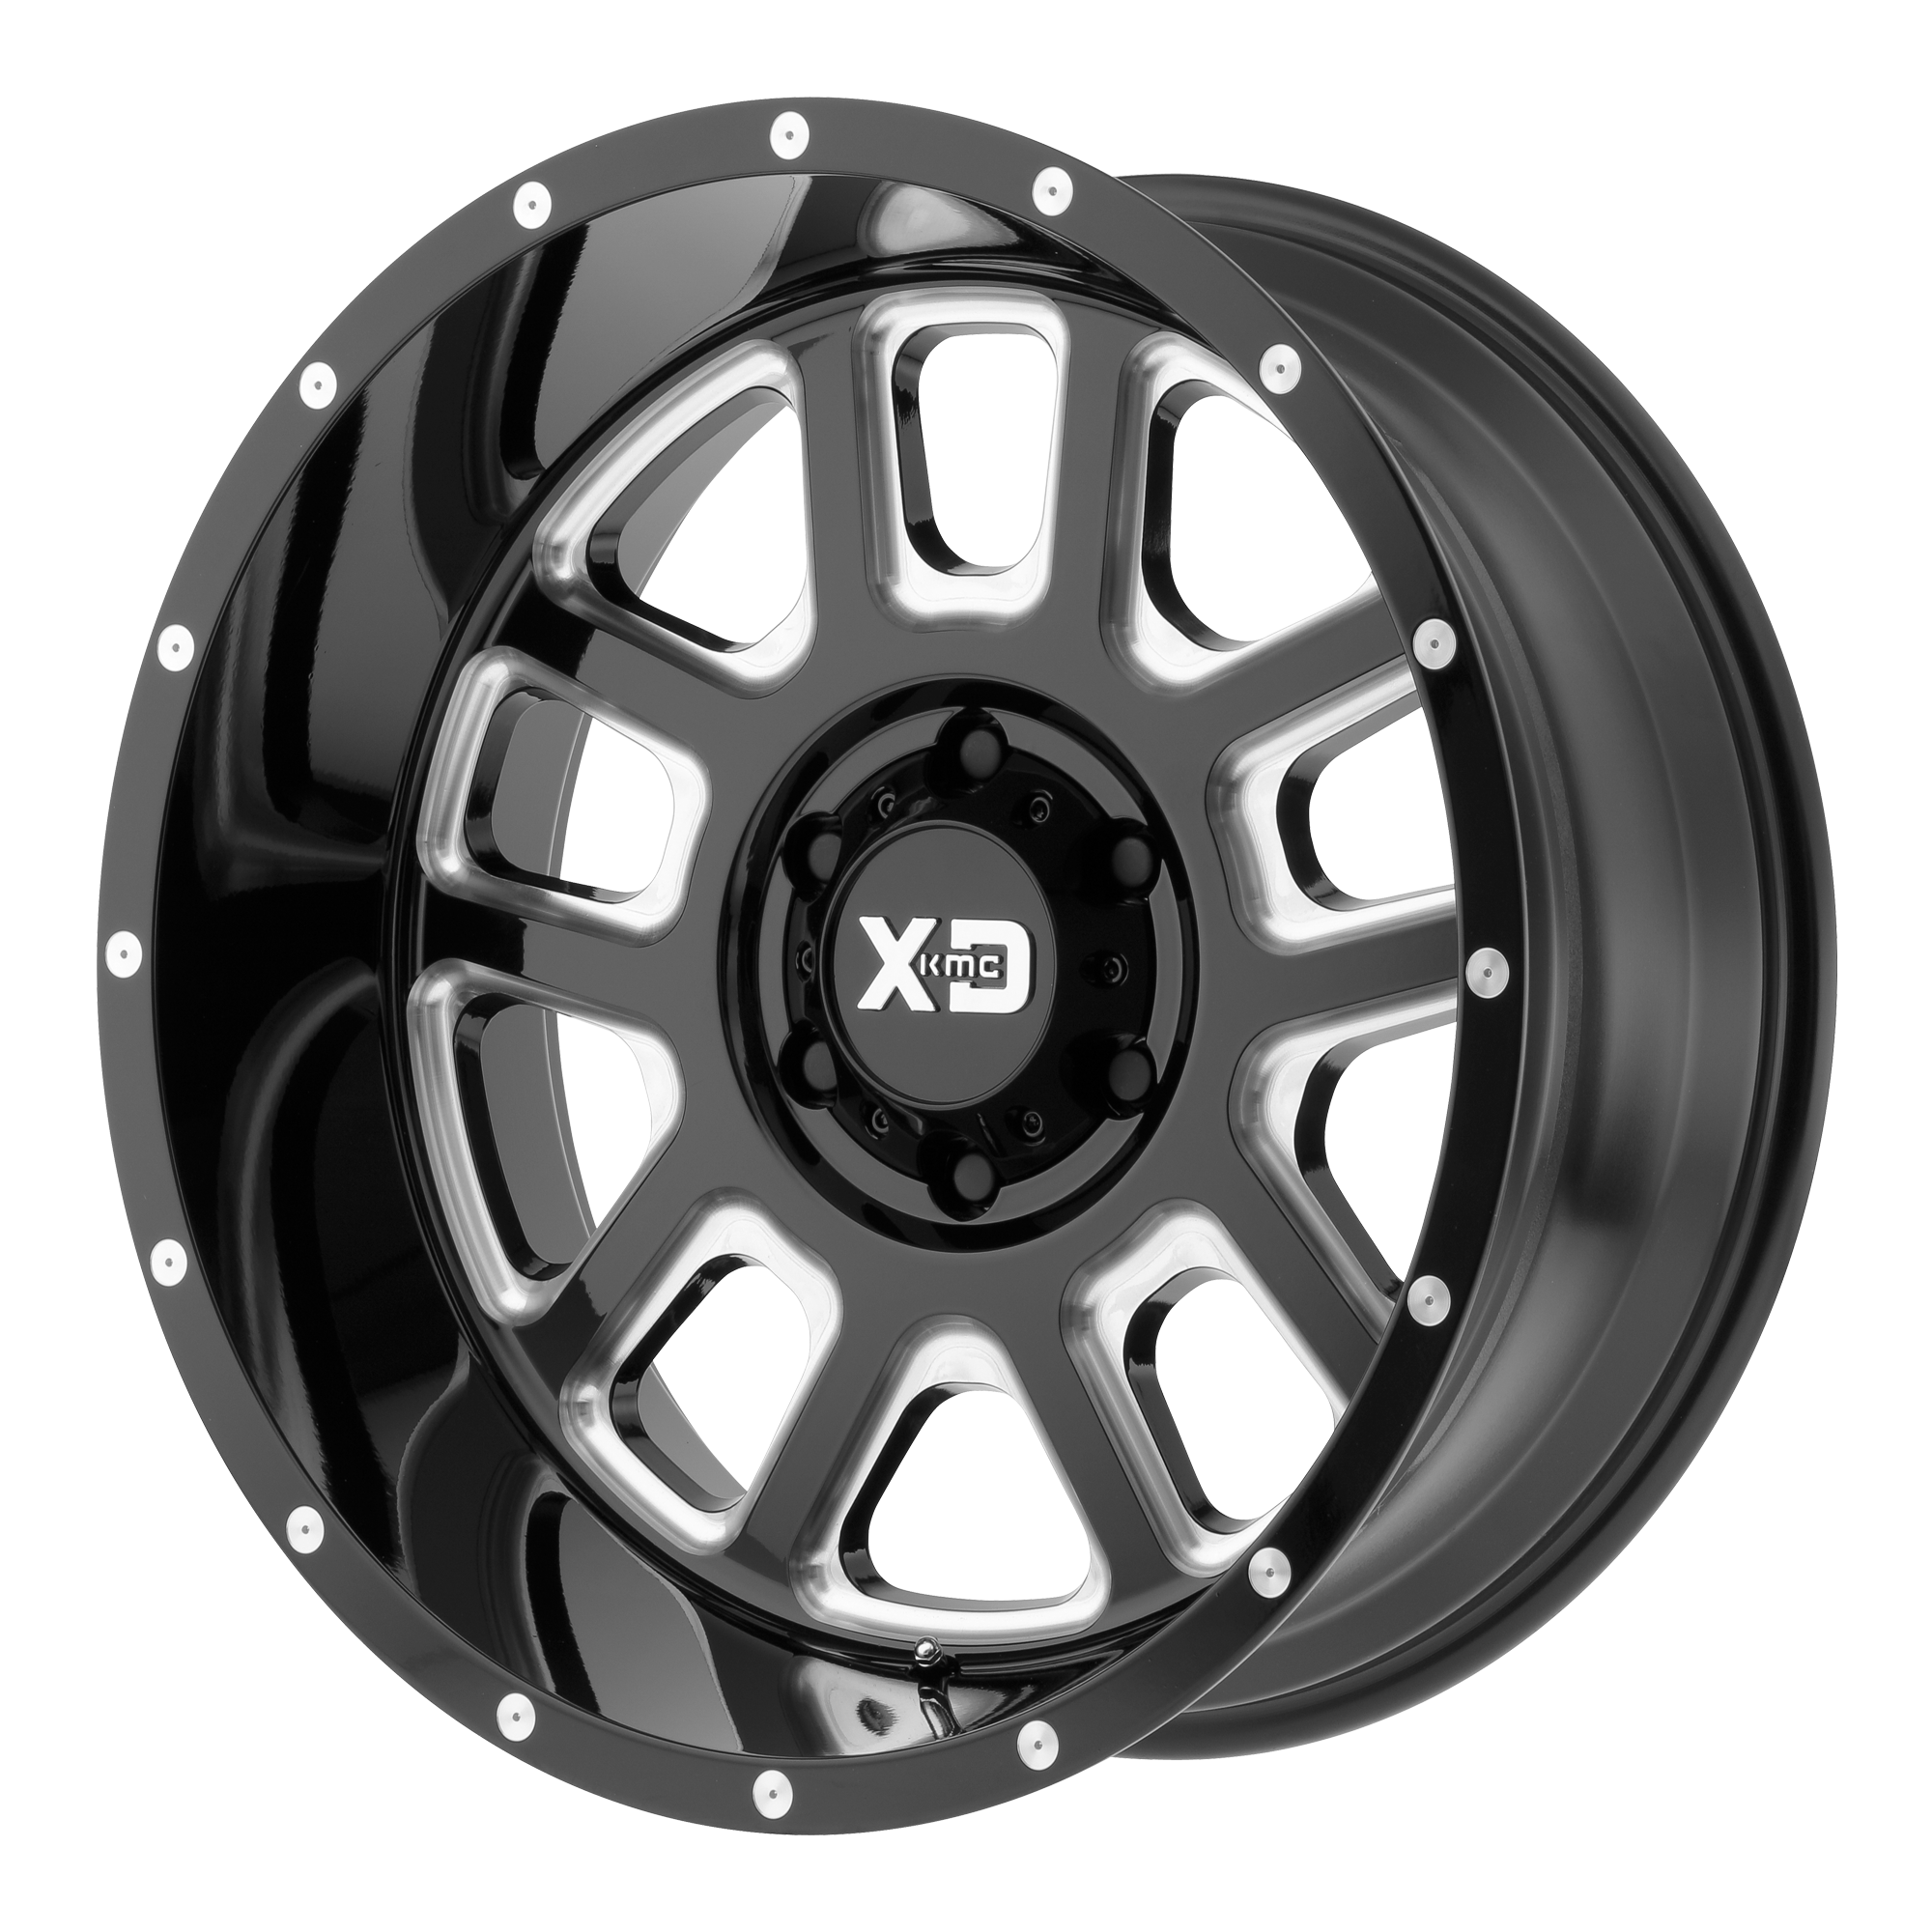 XD SERIES BY KMC WHEELS XD828 DELTA Gloss Black Milled